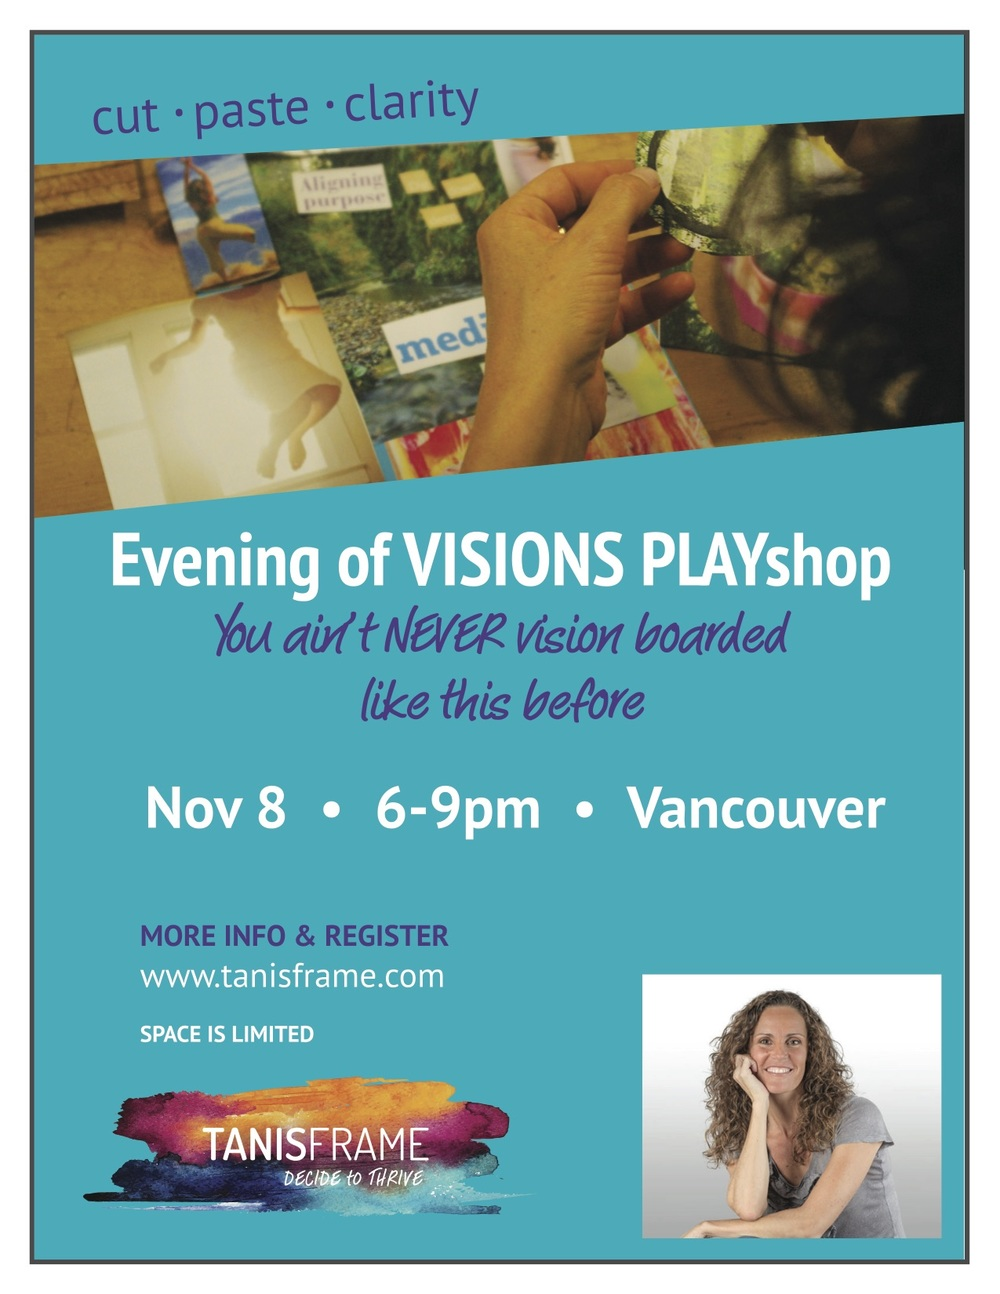 "Create a life you love with the science and art of vision boarding. Sunday November 8th Join us!  CLARITY awaits! ""I came away from the PLAYshop feeling inspired uplifted and ready embody my vision for 2015 with crystal clear interiors."" - Sharon Tron ""I just wanted to say thank you. I had so much fun during the PLAYshop itself but its ongoing impact on my life is what has really impressed me."" - Erin Whalen To register, go to http://tanisframe.com/programs/evening-of-visions-playshop/ Cost: $67, all supplies, refreshments, plus take home Toolkit included."